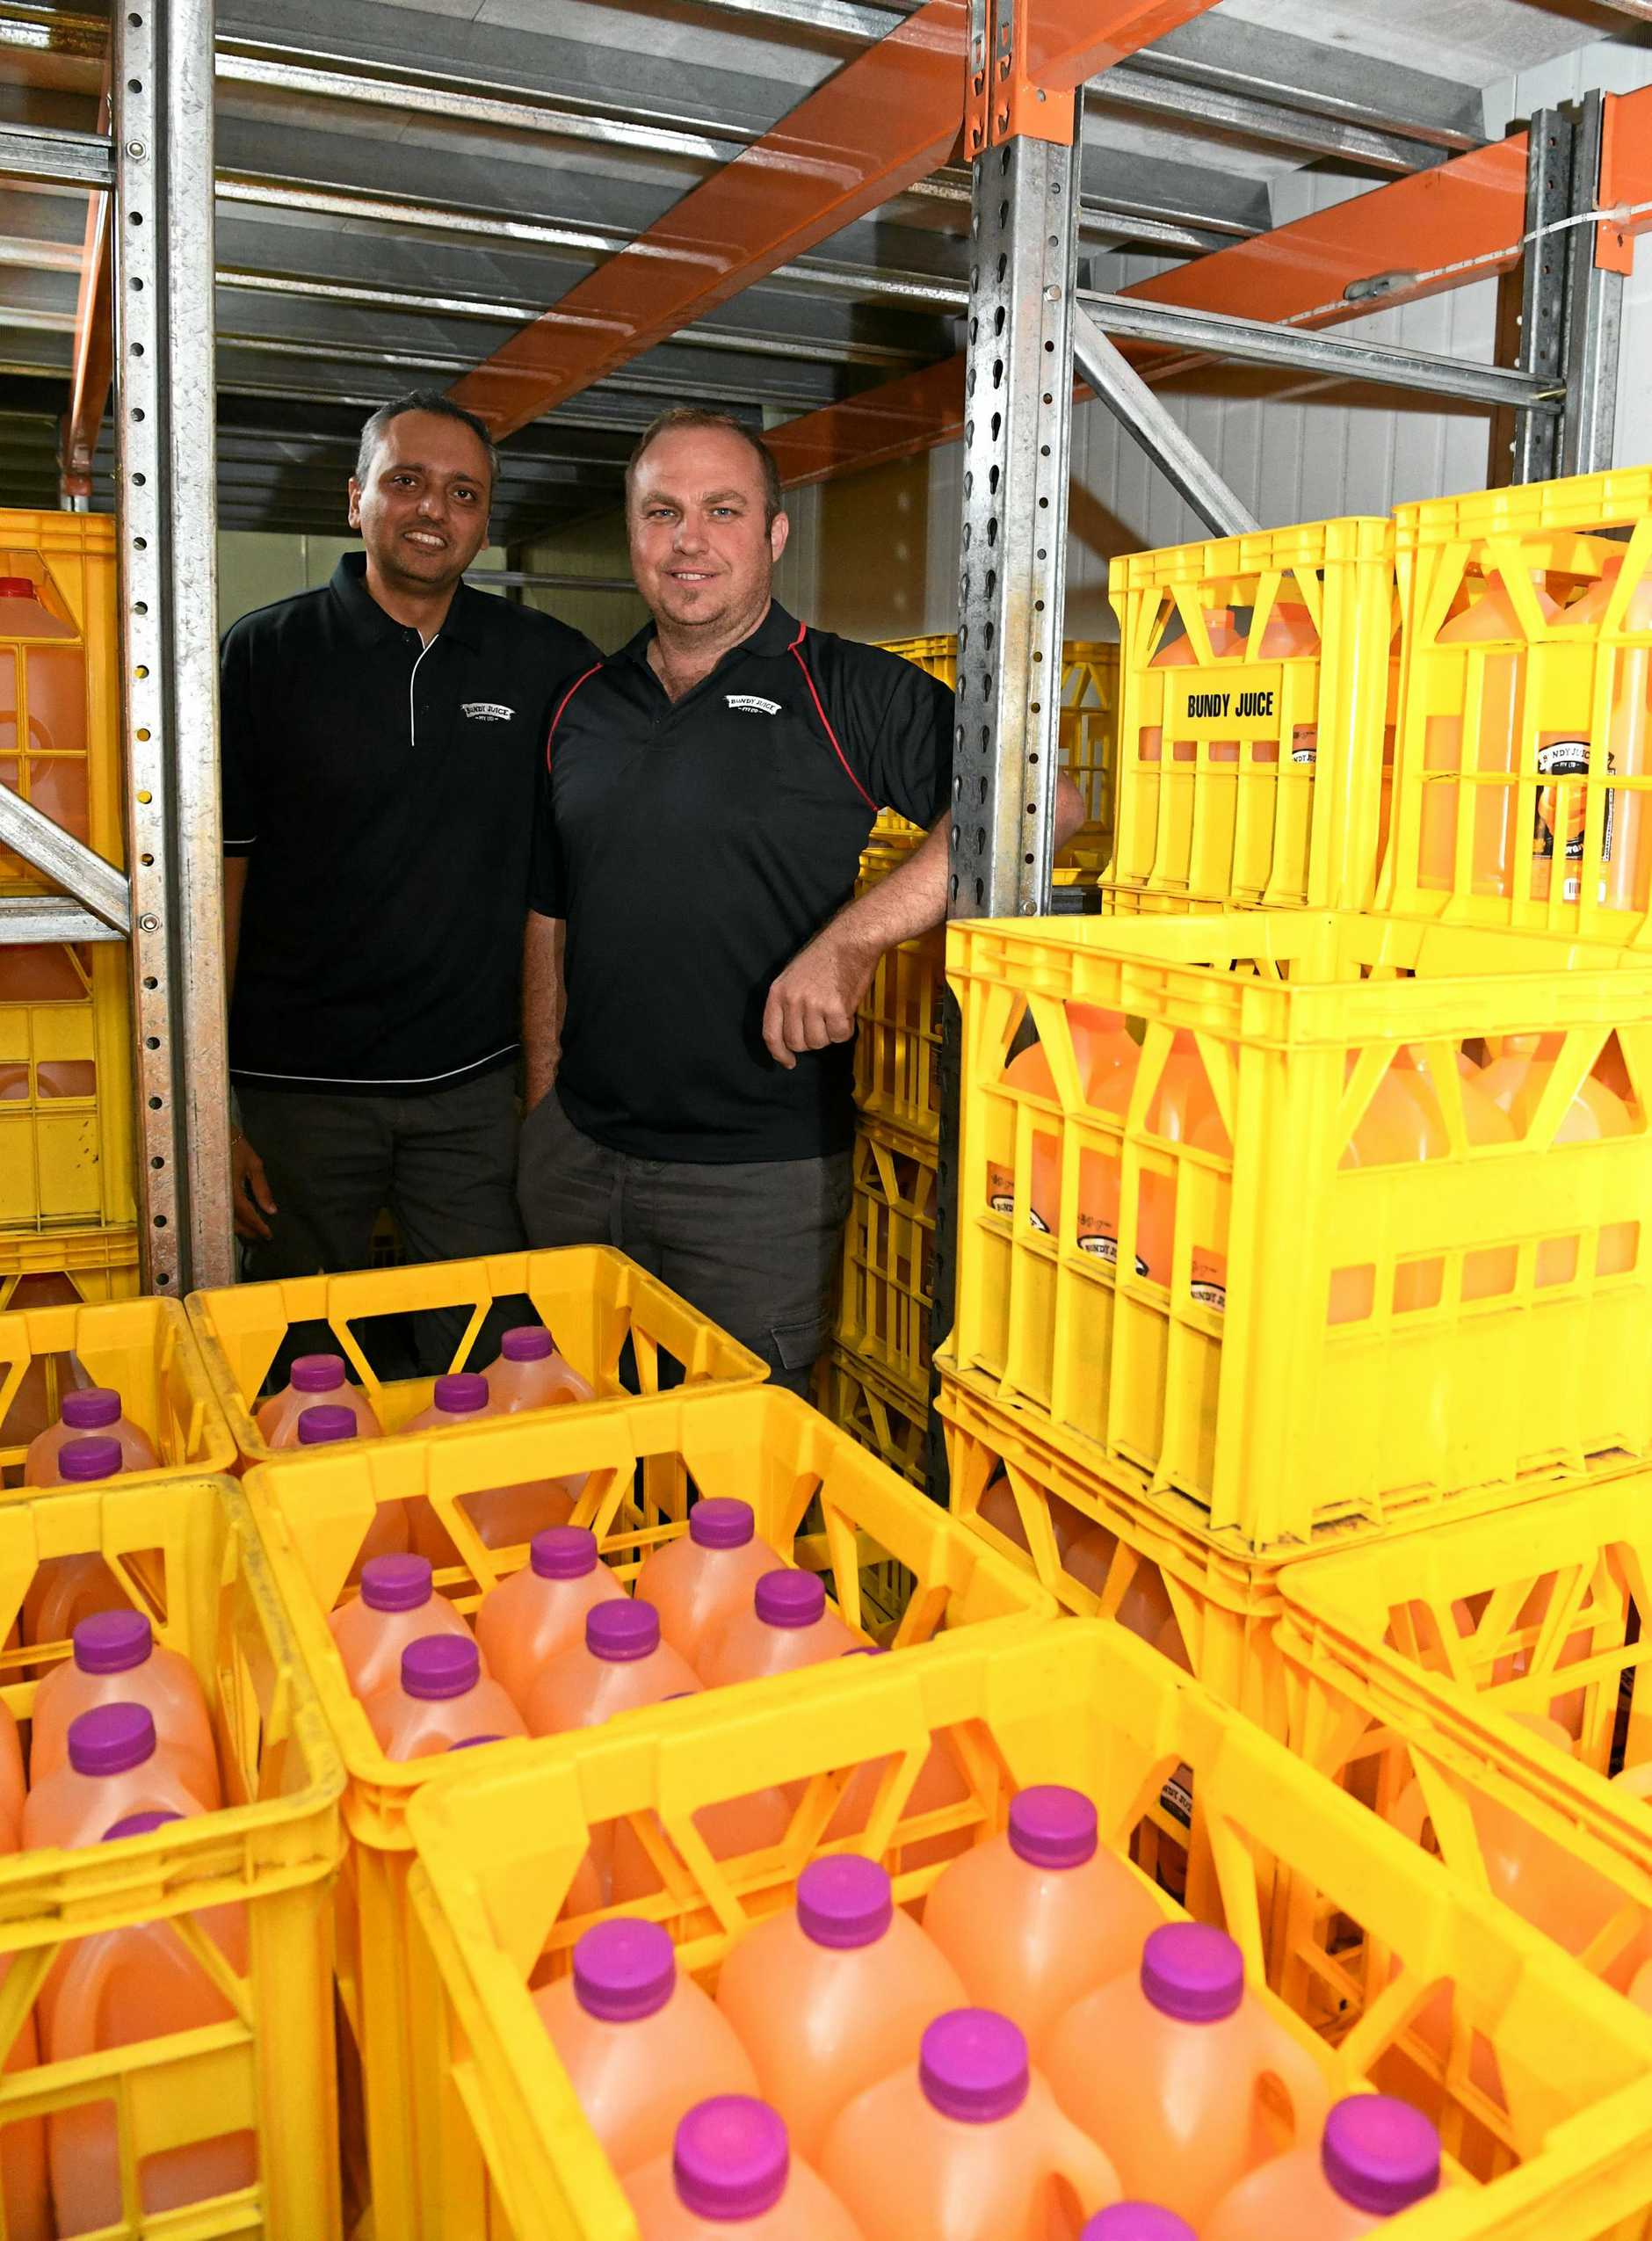 BACK ON TRACK: Bundy Juice's Mark D'Silva and Collin Mann are looking forward to orange supplies returning to normal levels.